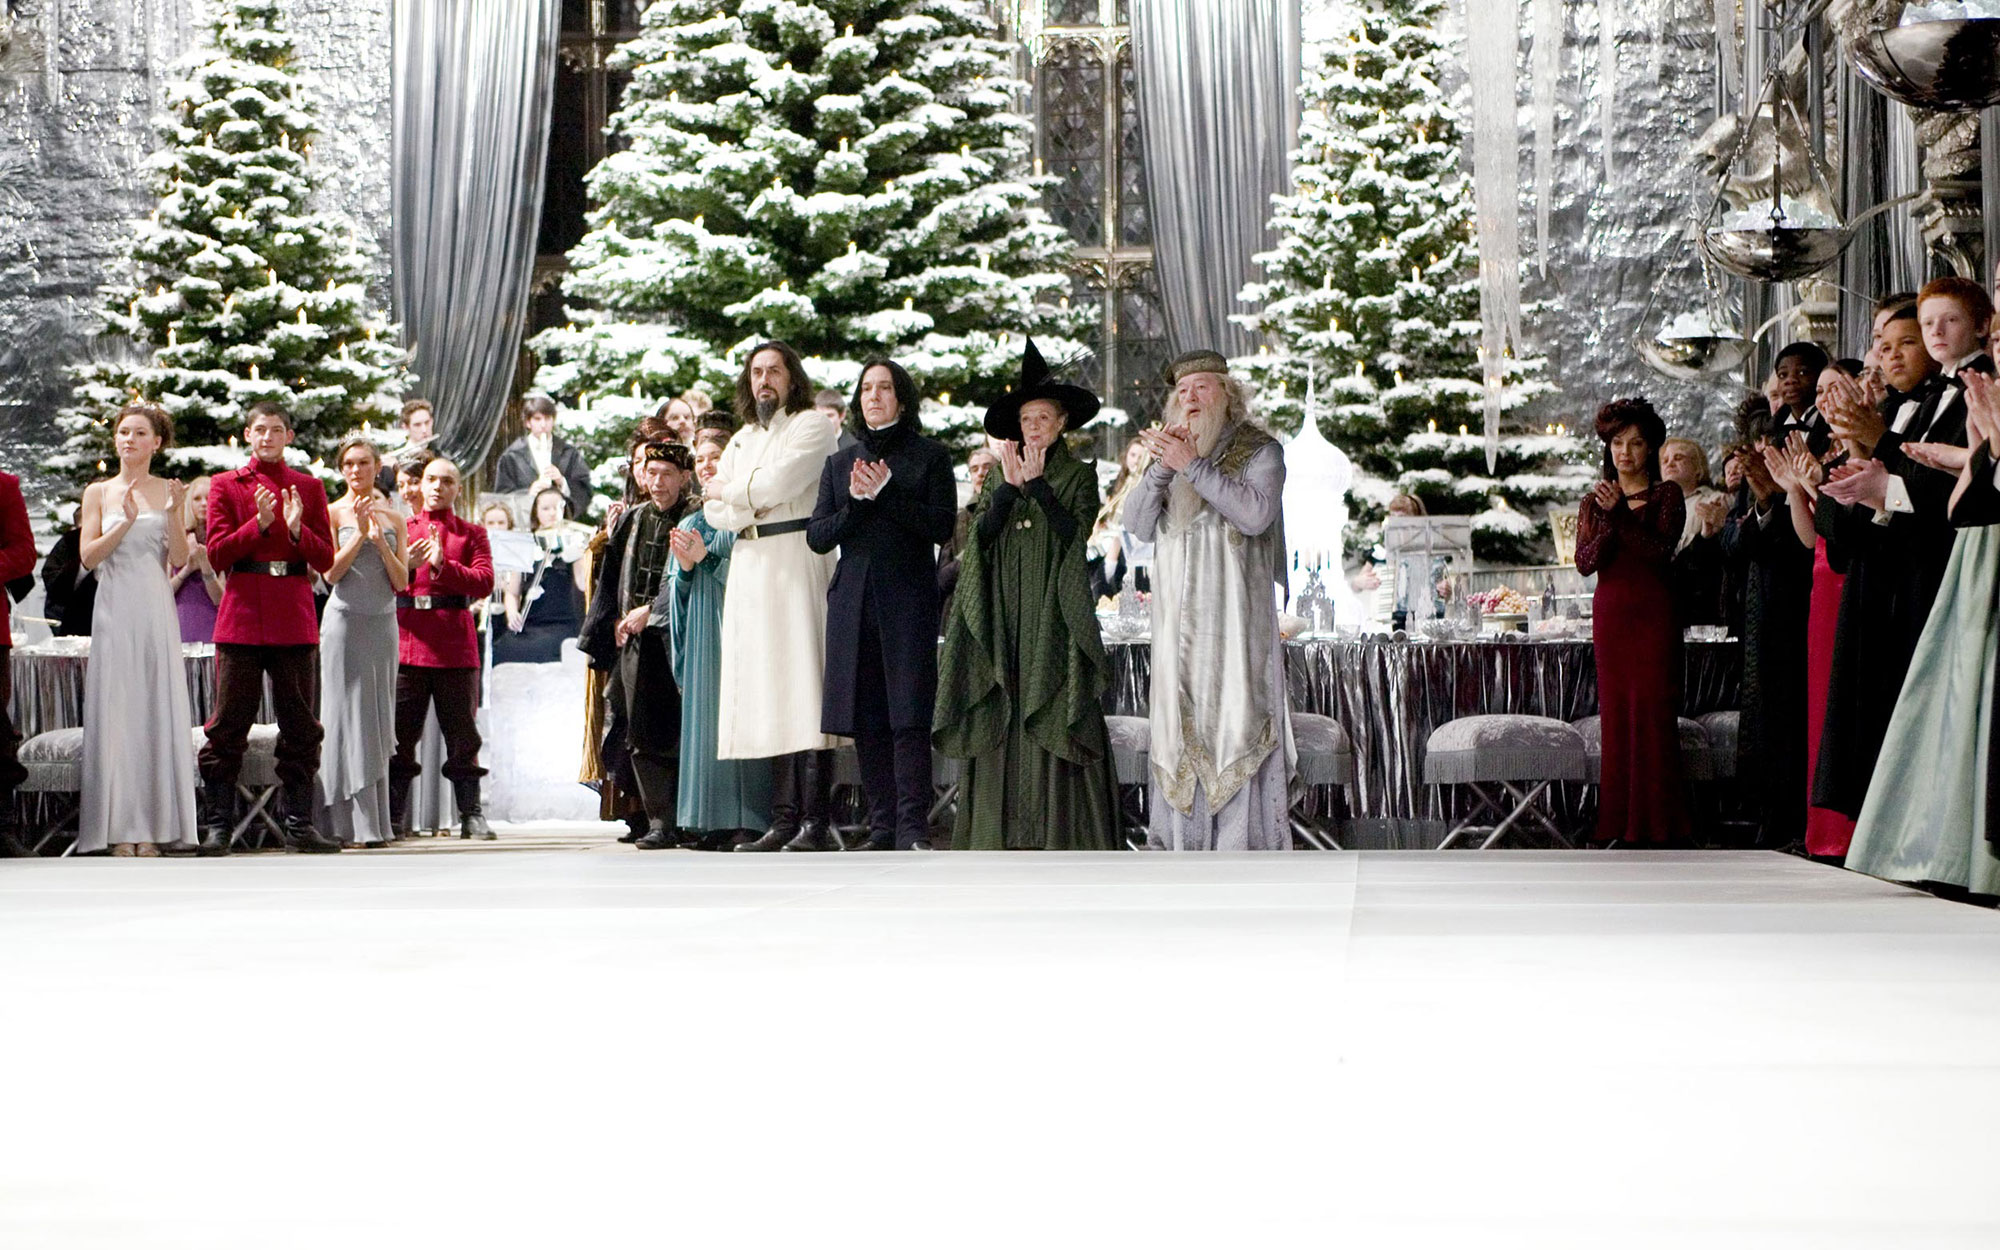 Orlando's Wizarding World of Harry Potter Might Host a Yule Ball